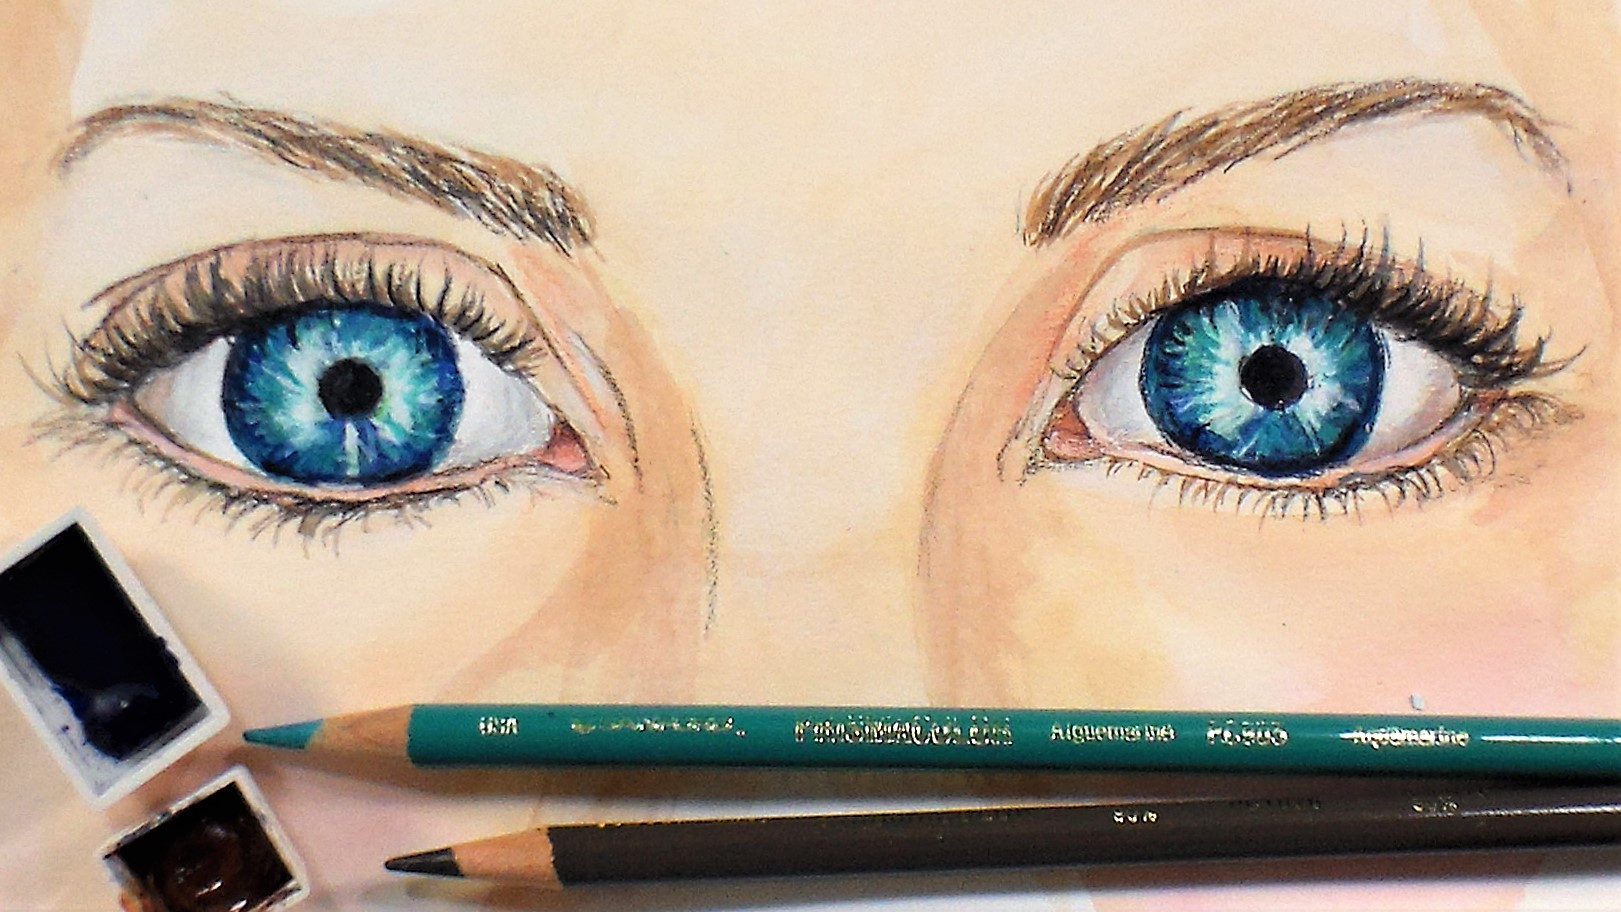 Sketchbook Sunday: The Eyes Have It! & April Artwork